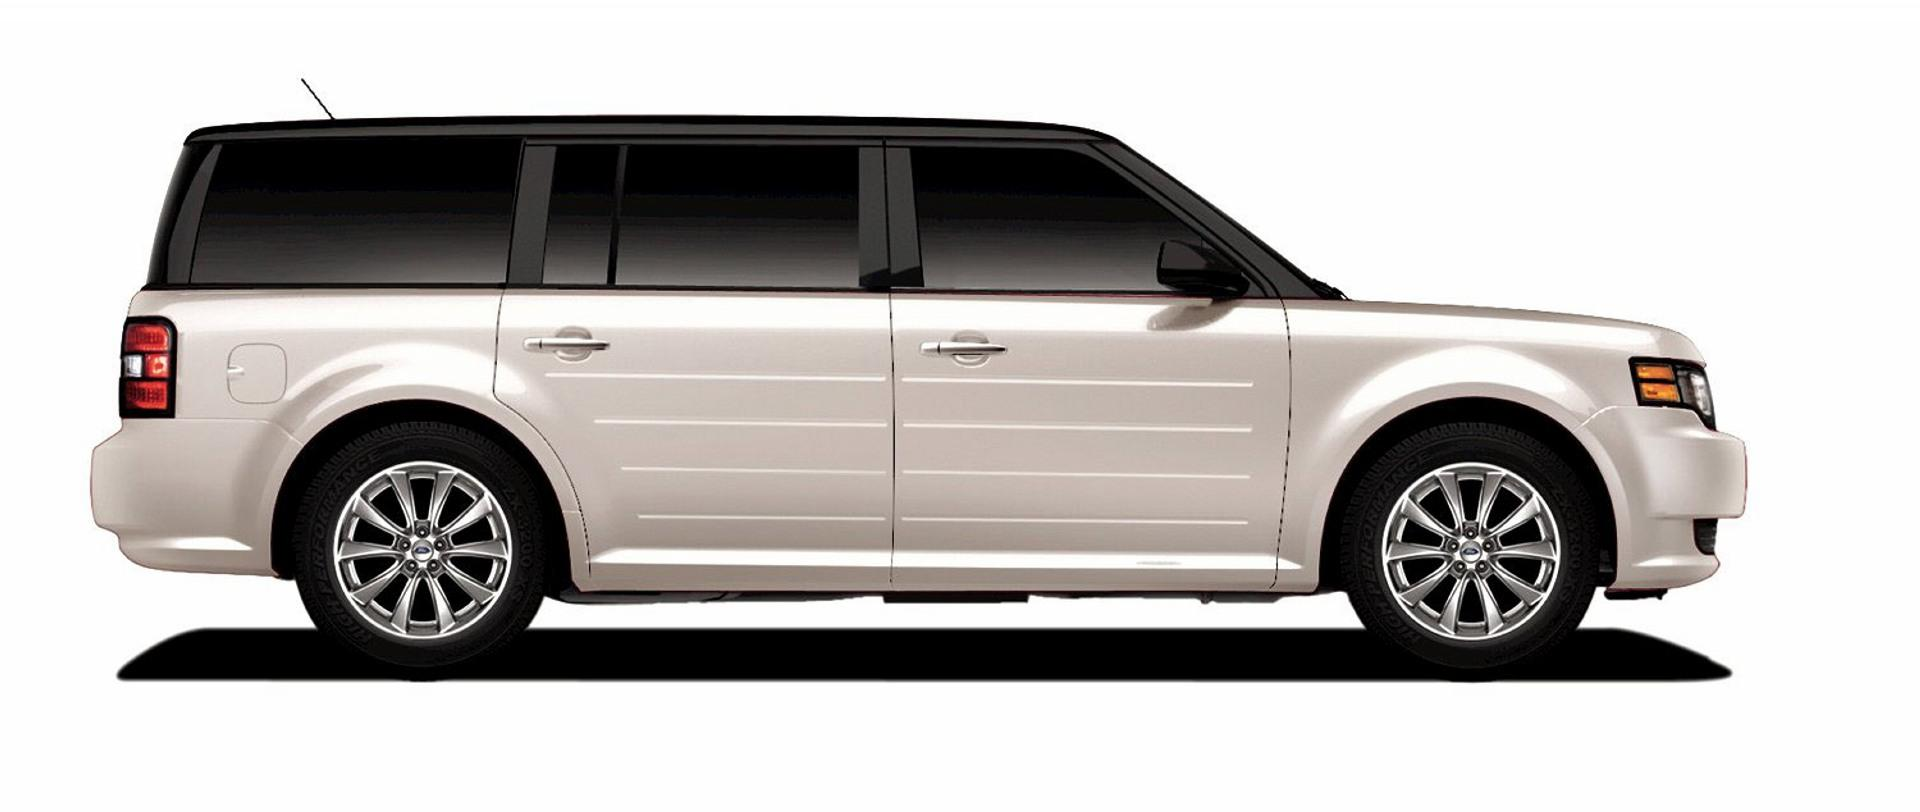 2010 Ford Flex Titanium News And Information